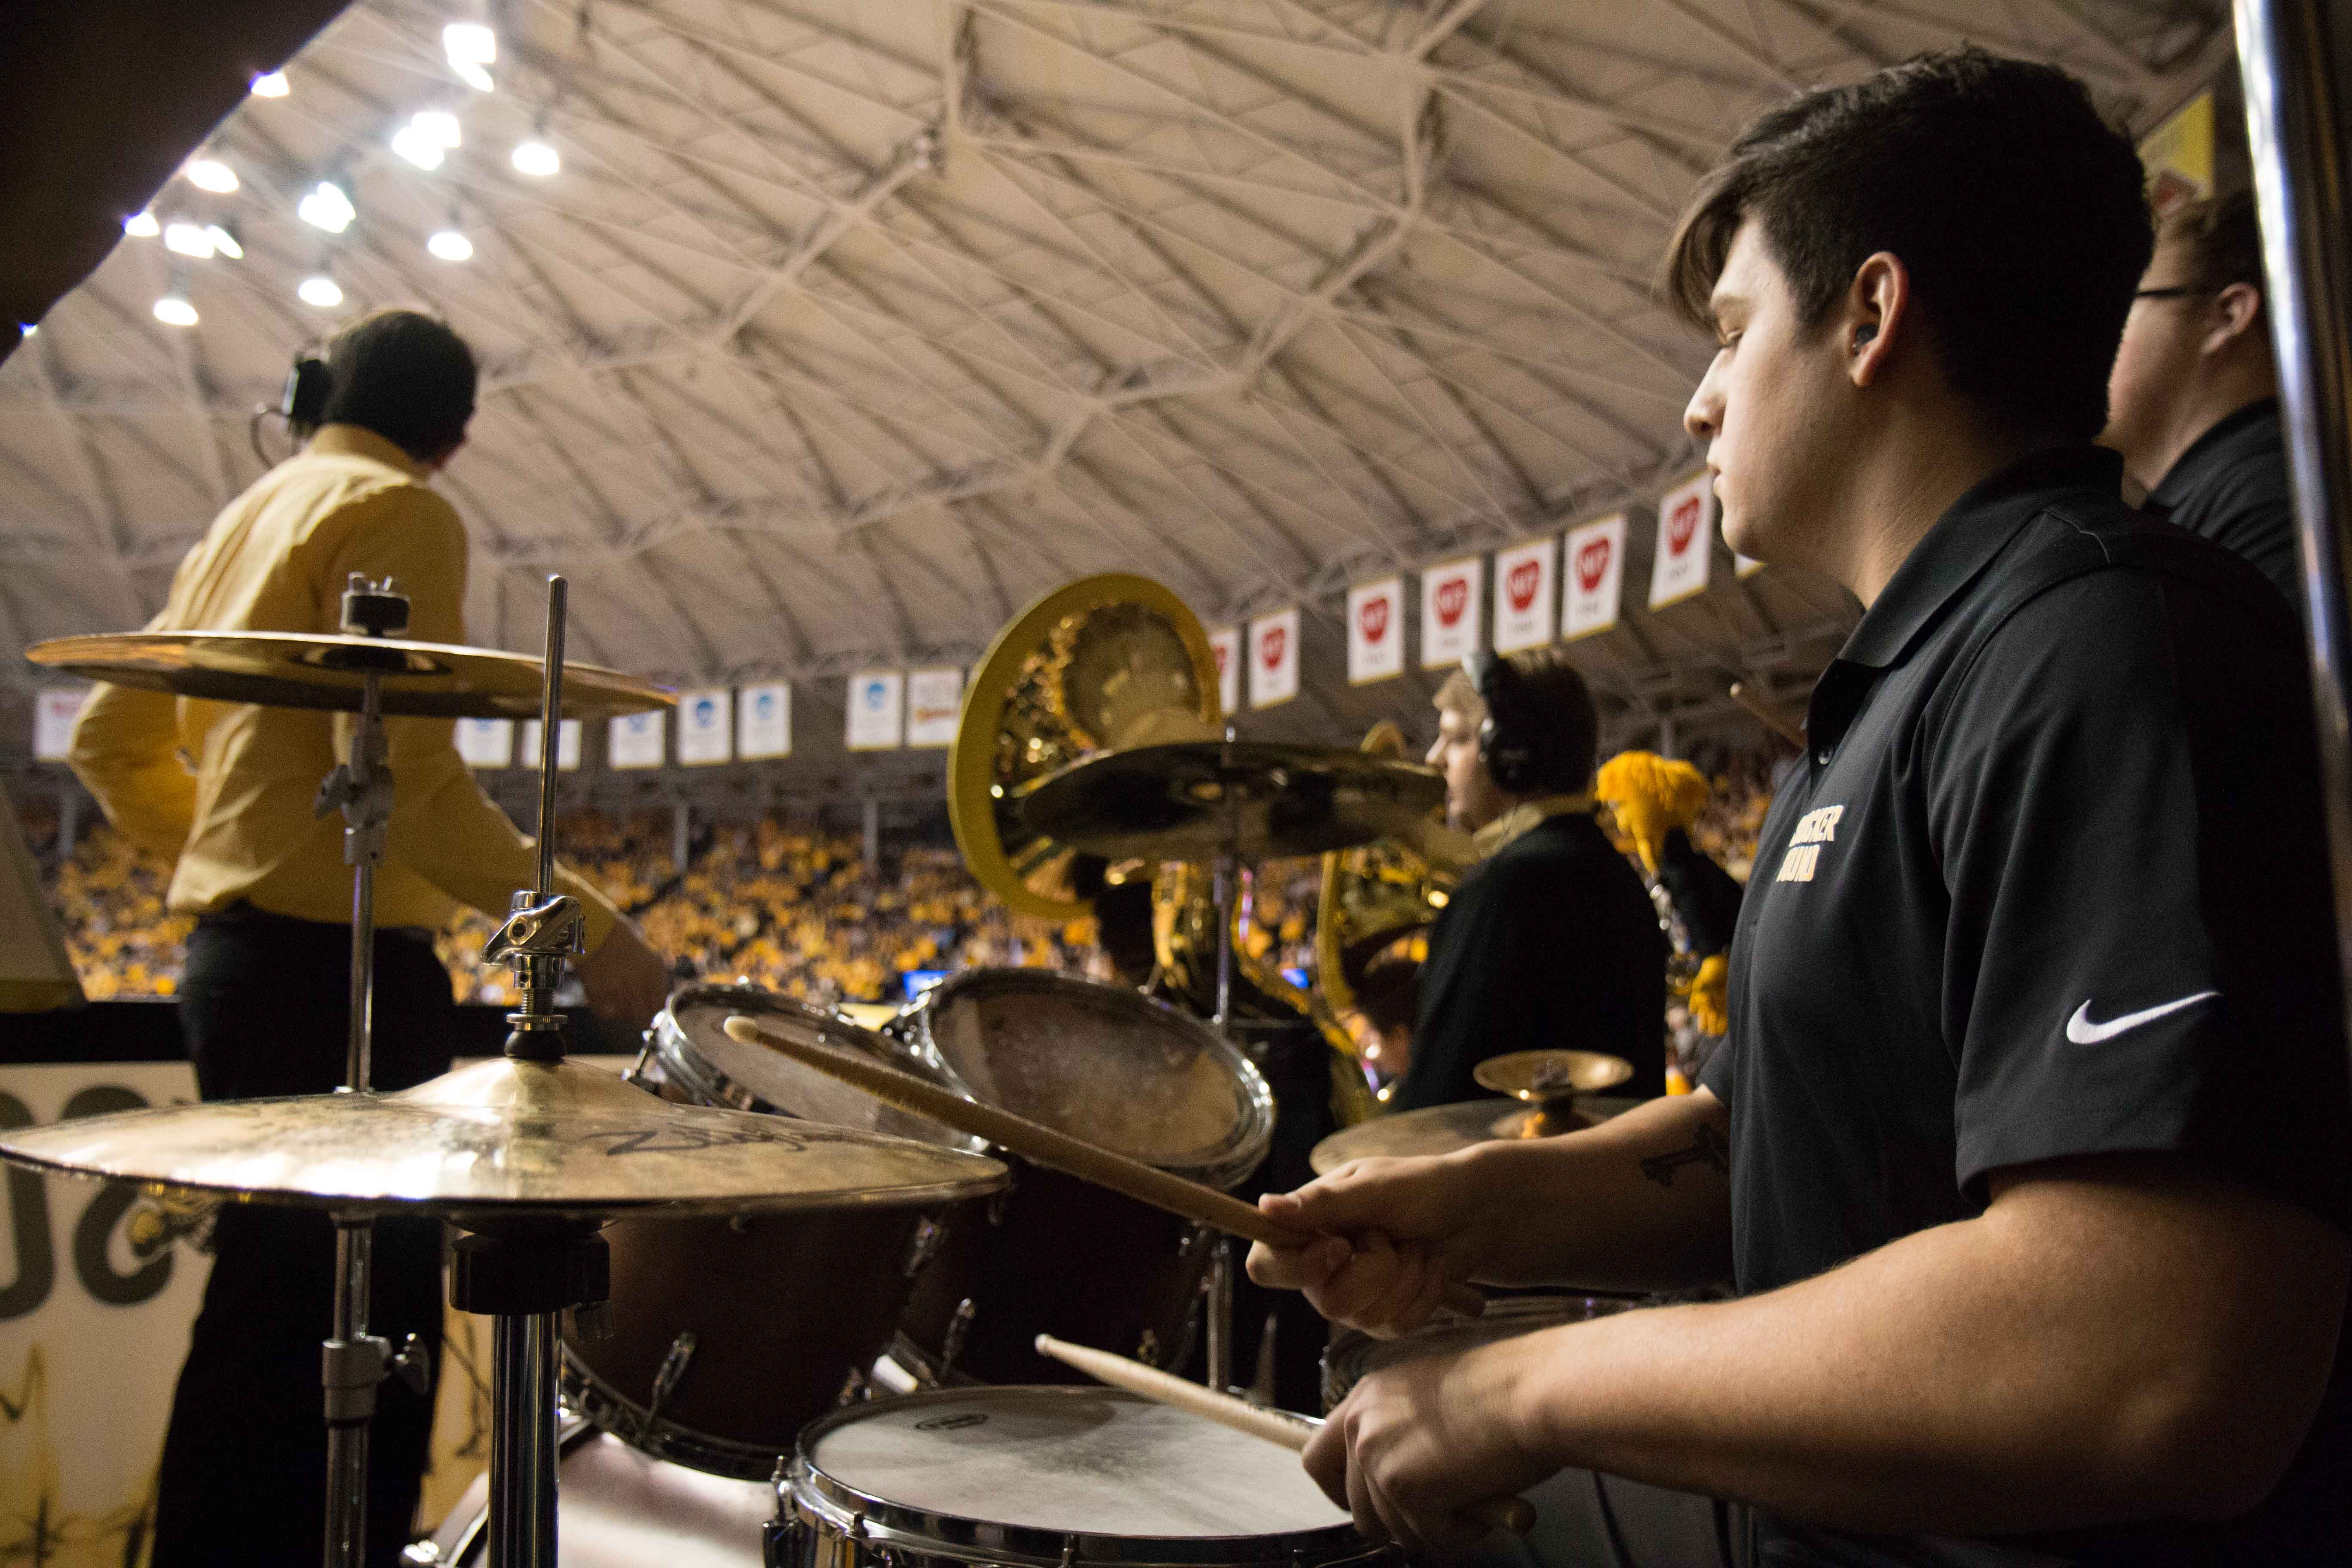 Wyatt Vieux, a member of the Shocker Sound, plays the drums during the game against Illinois State Saturday night. (Feb. 4, 2017)